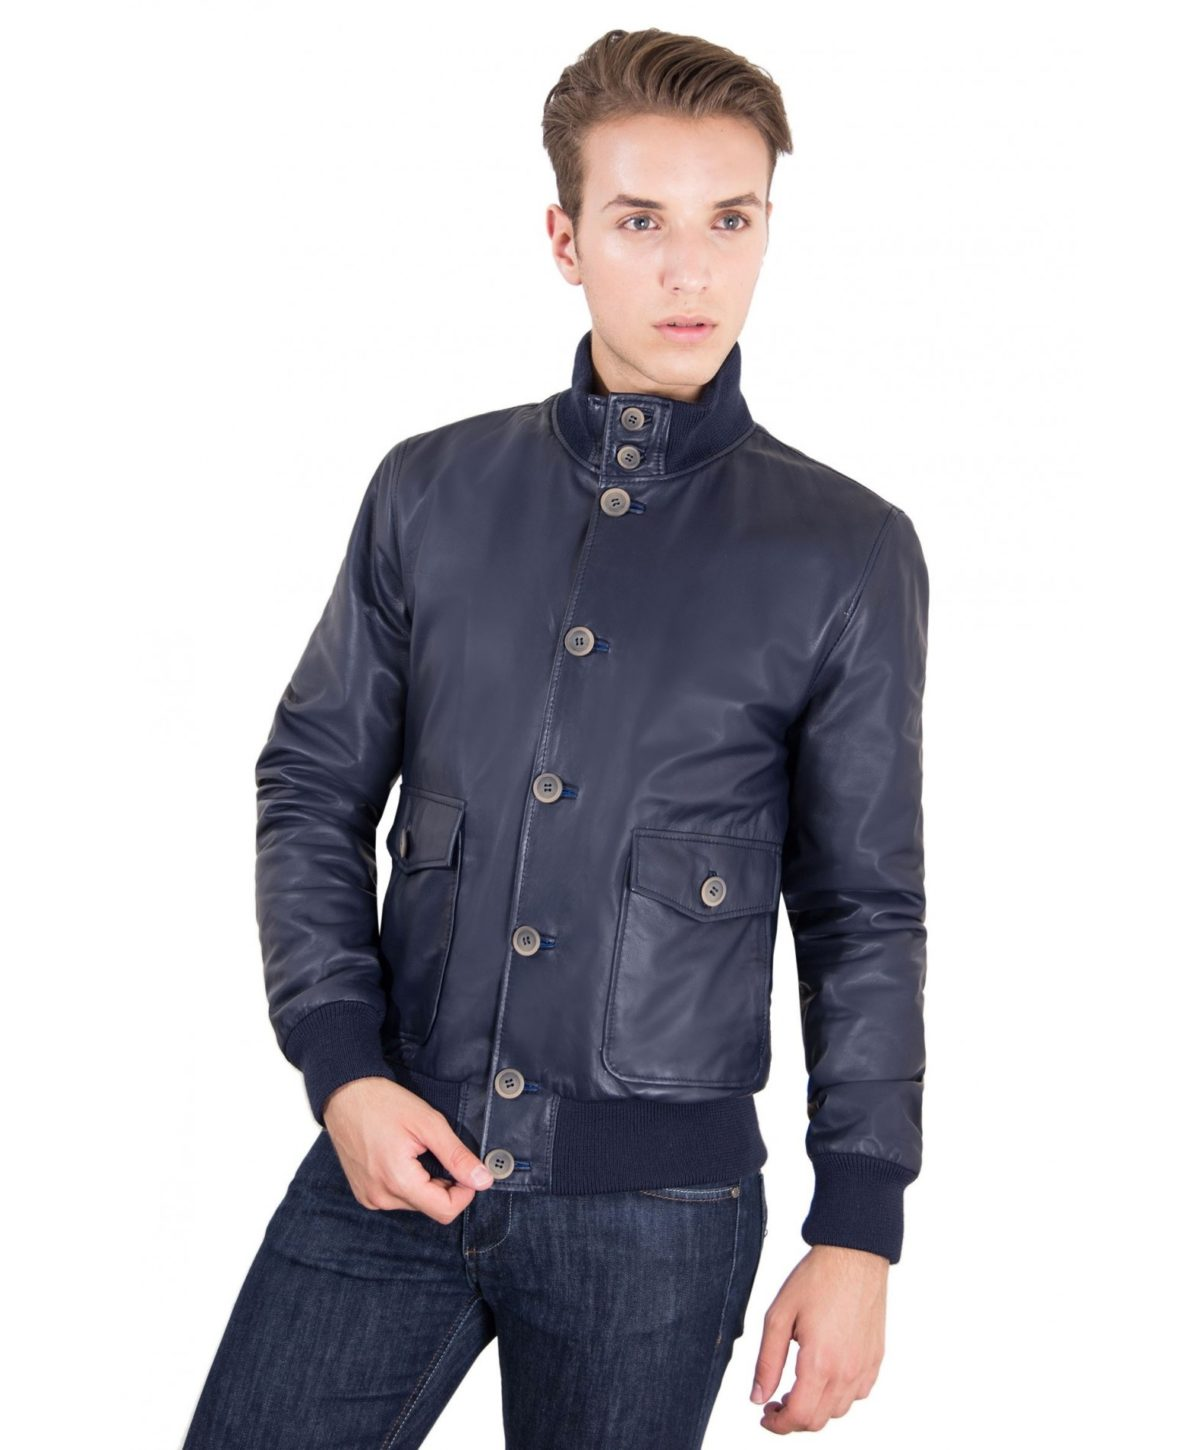 men-s-leather-jacket-genuine-soft-leather-style-bomber-wool-cuffs-and-bottom-buttons-closing-blue-color-alex-bottoni